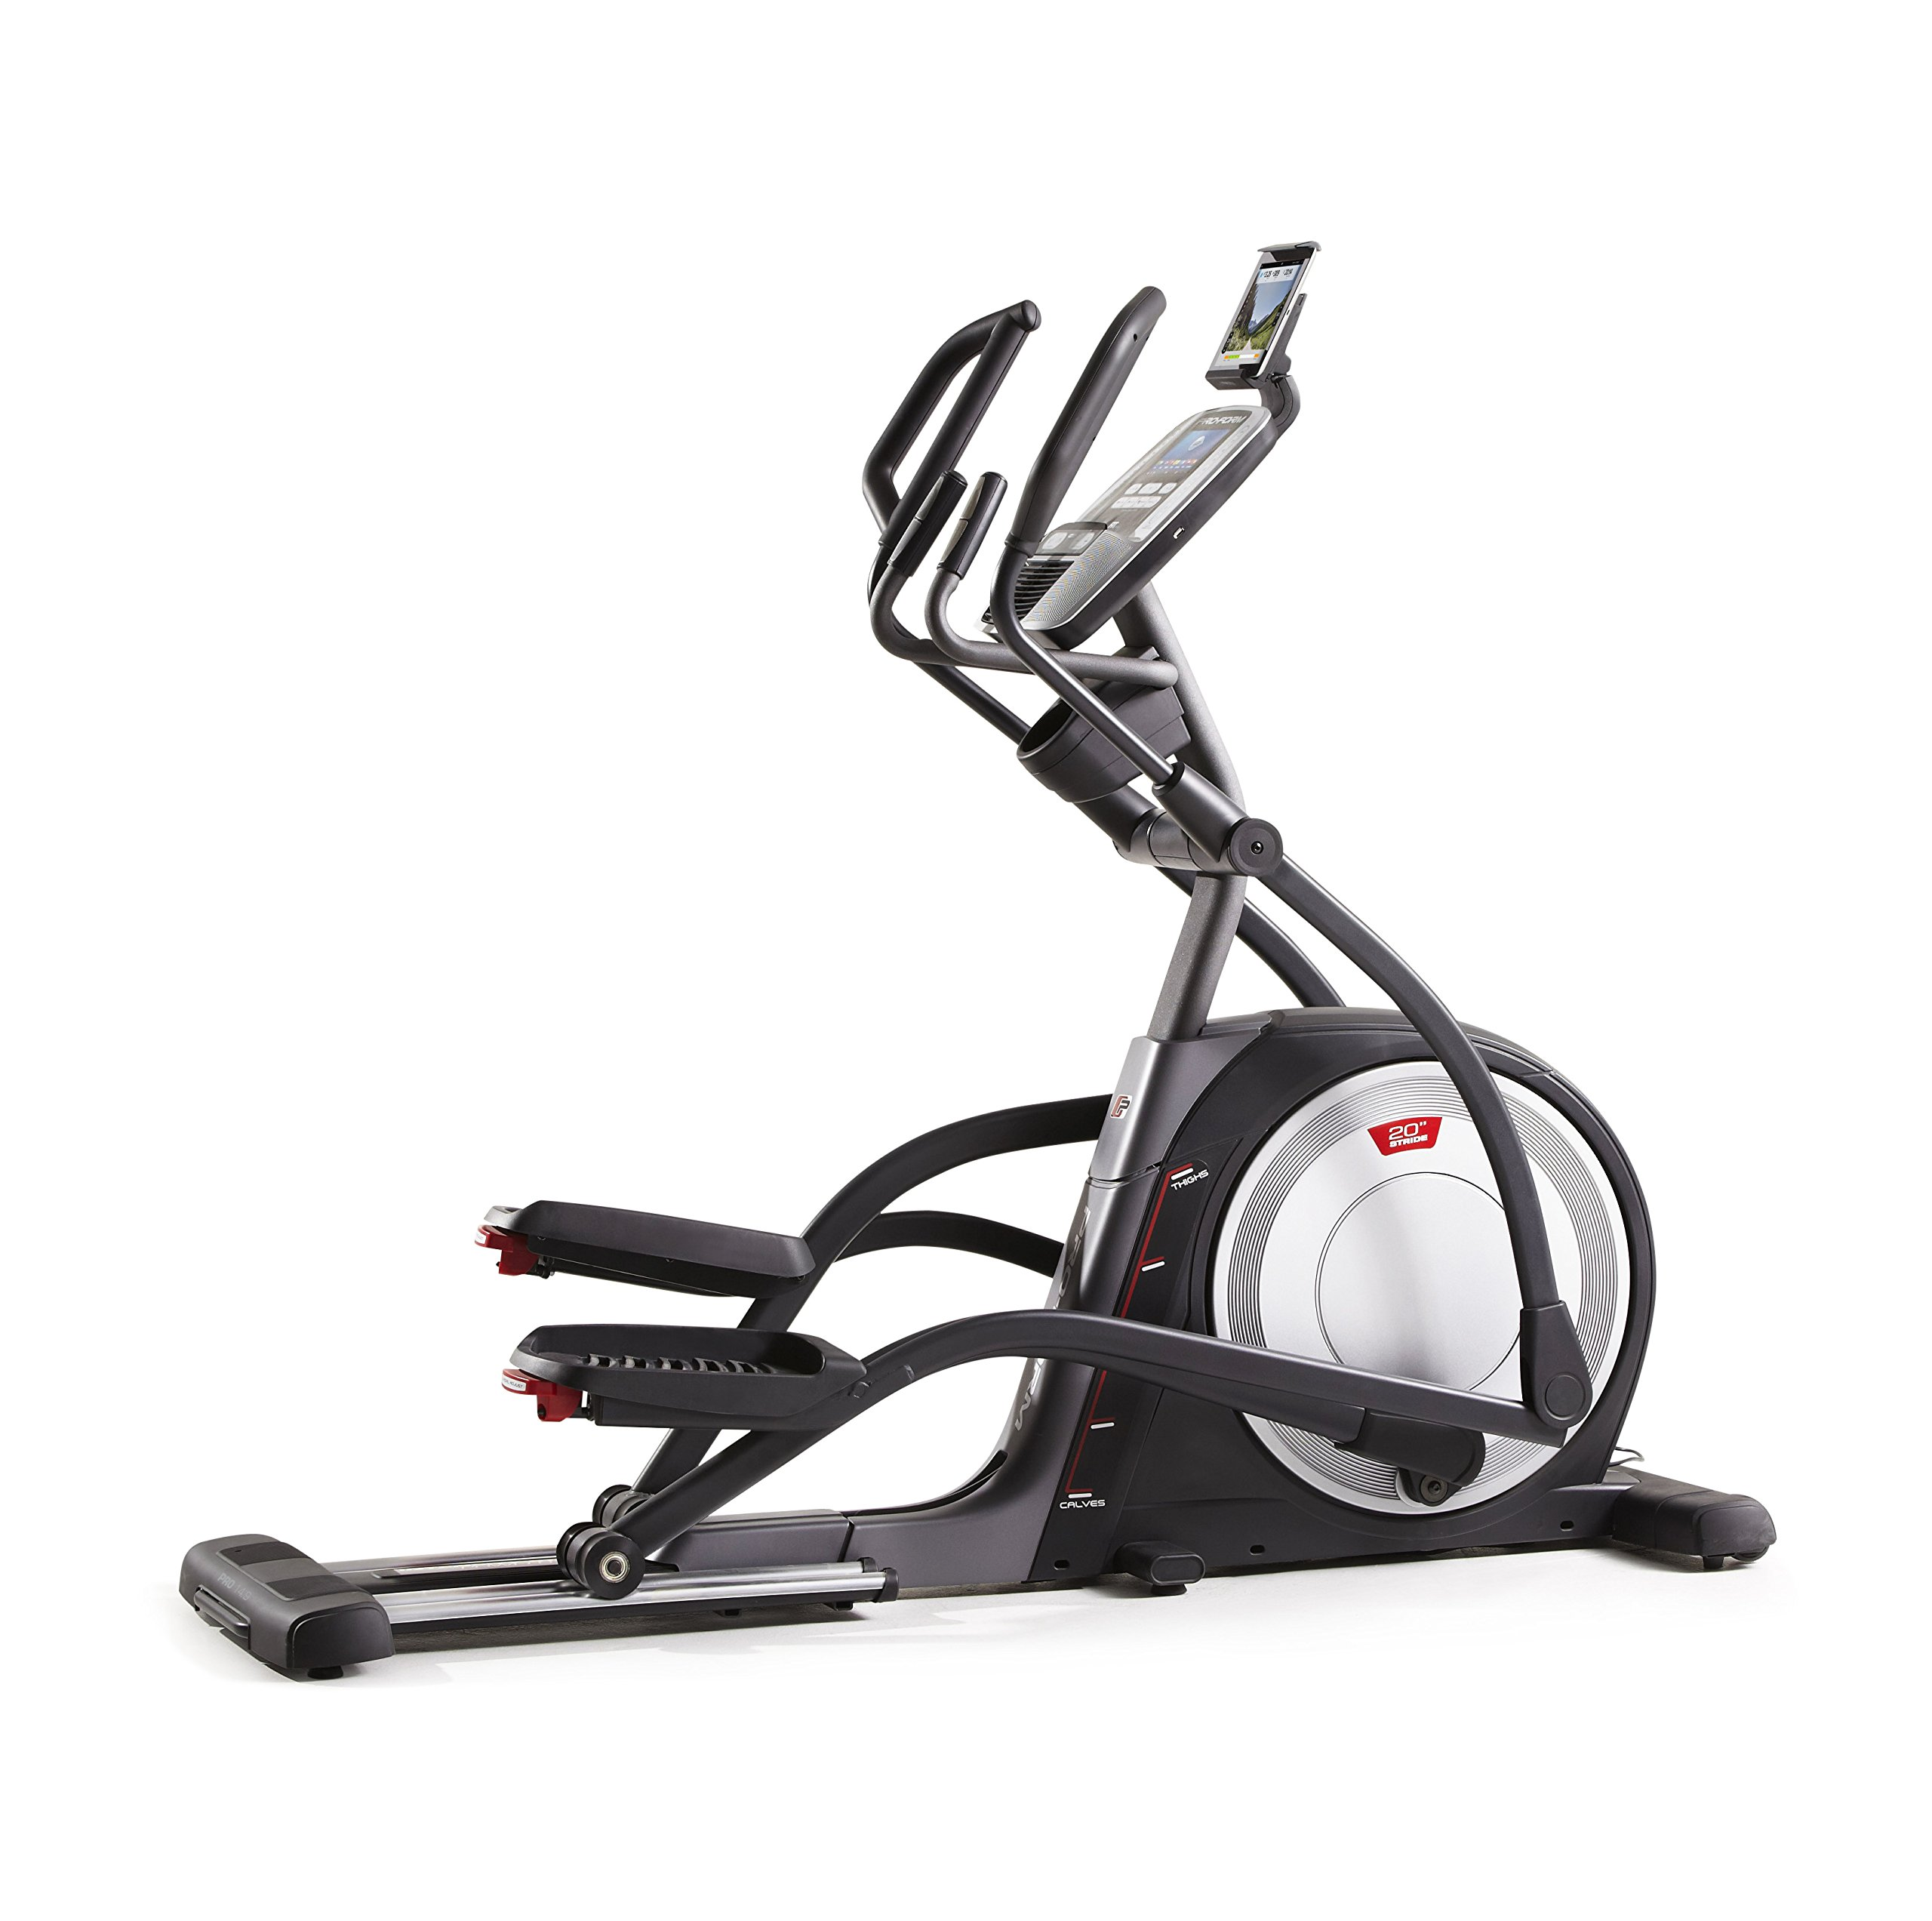 ProForm Pro 16.9 Elliptical Trainer by ProForm (Image #6)